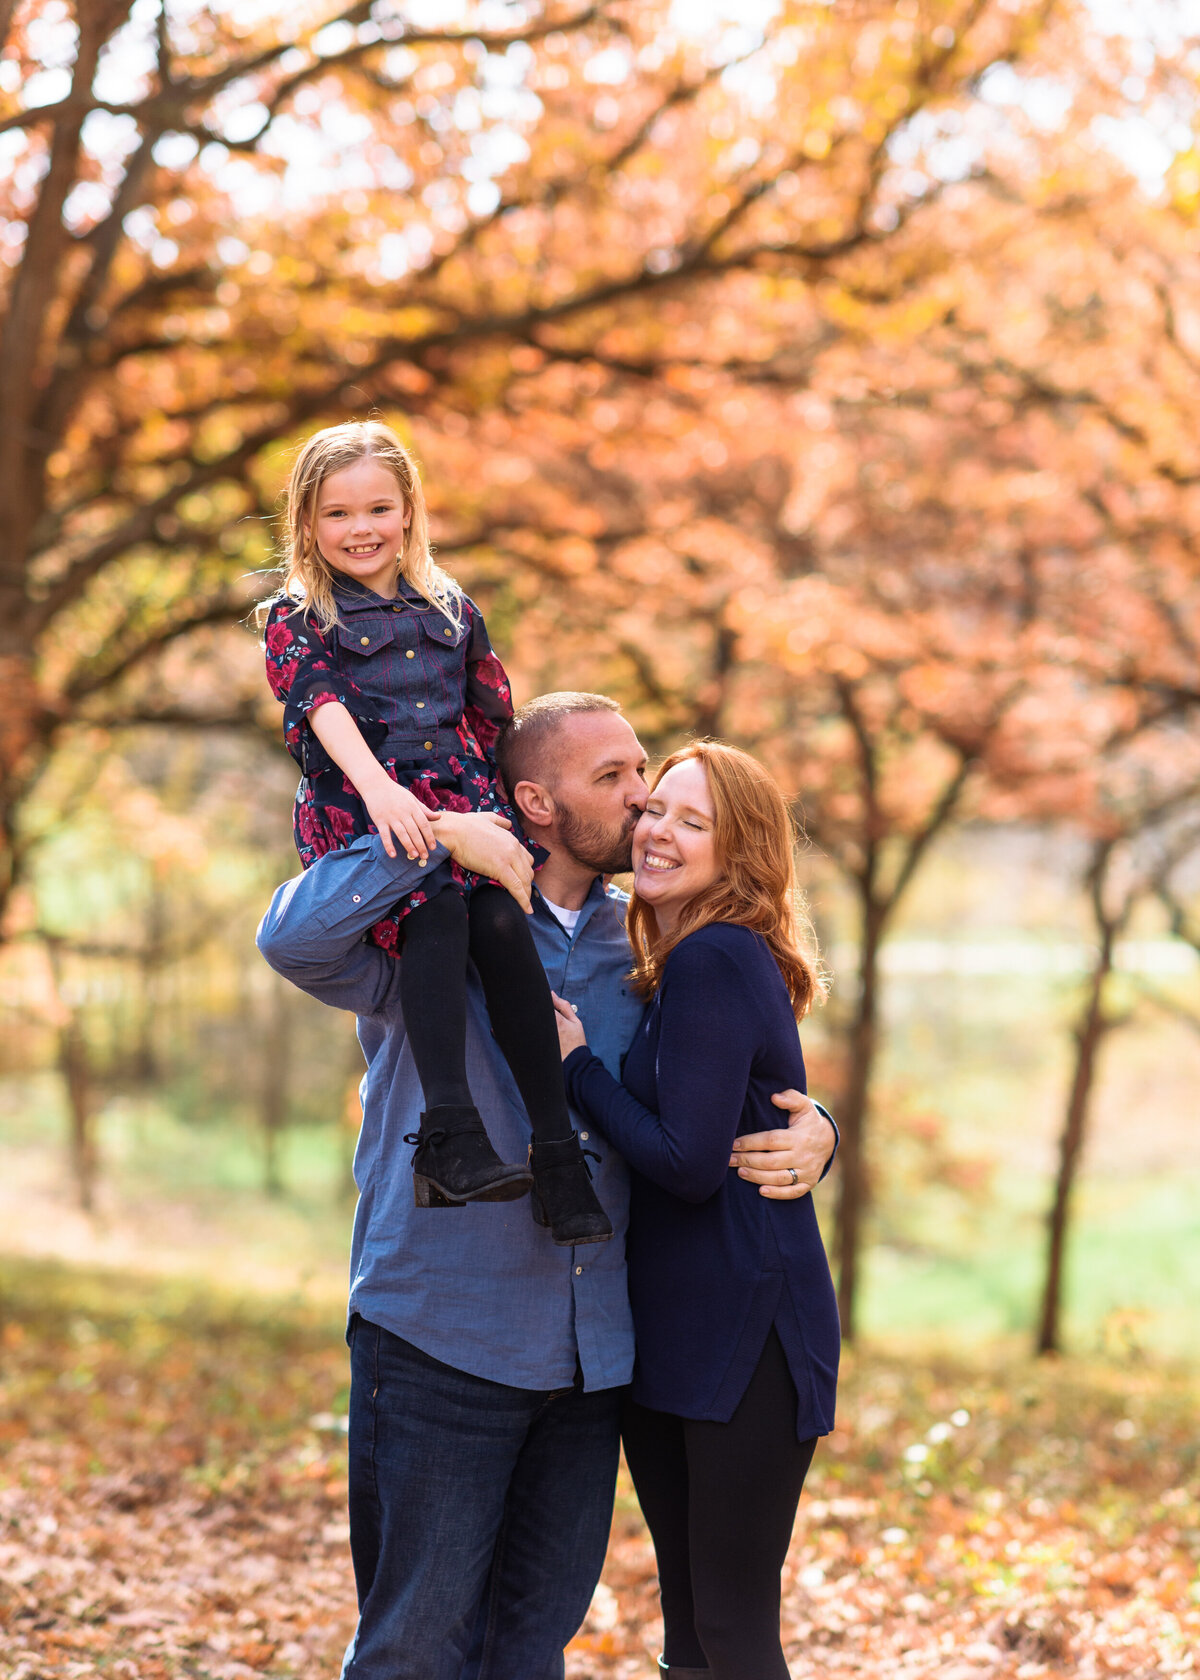 Des-Moines-Iowa-Family-Photographer-Theresa-Schumacher-Photography-Fall-Park-Three